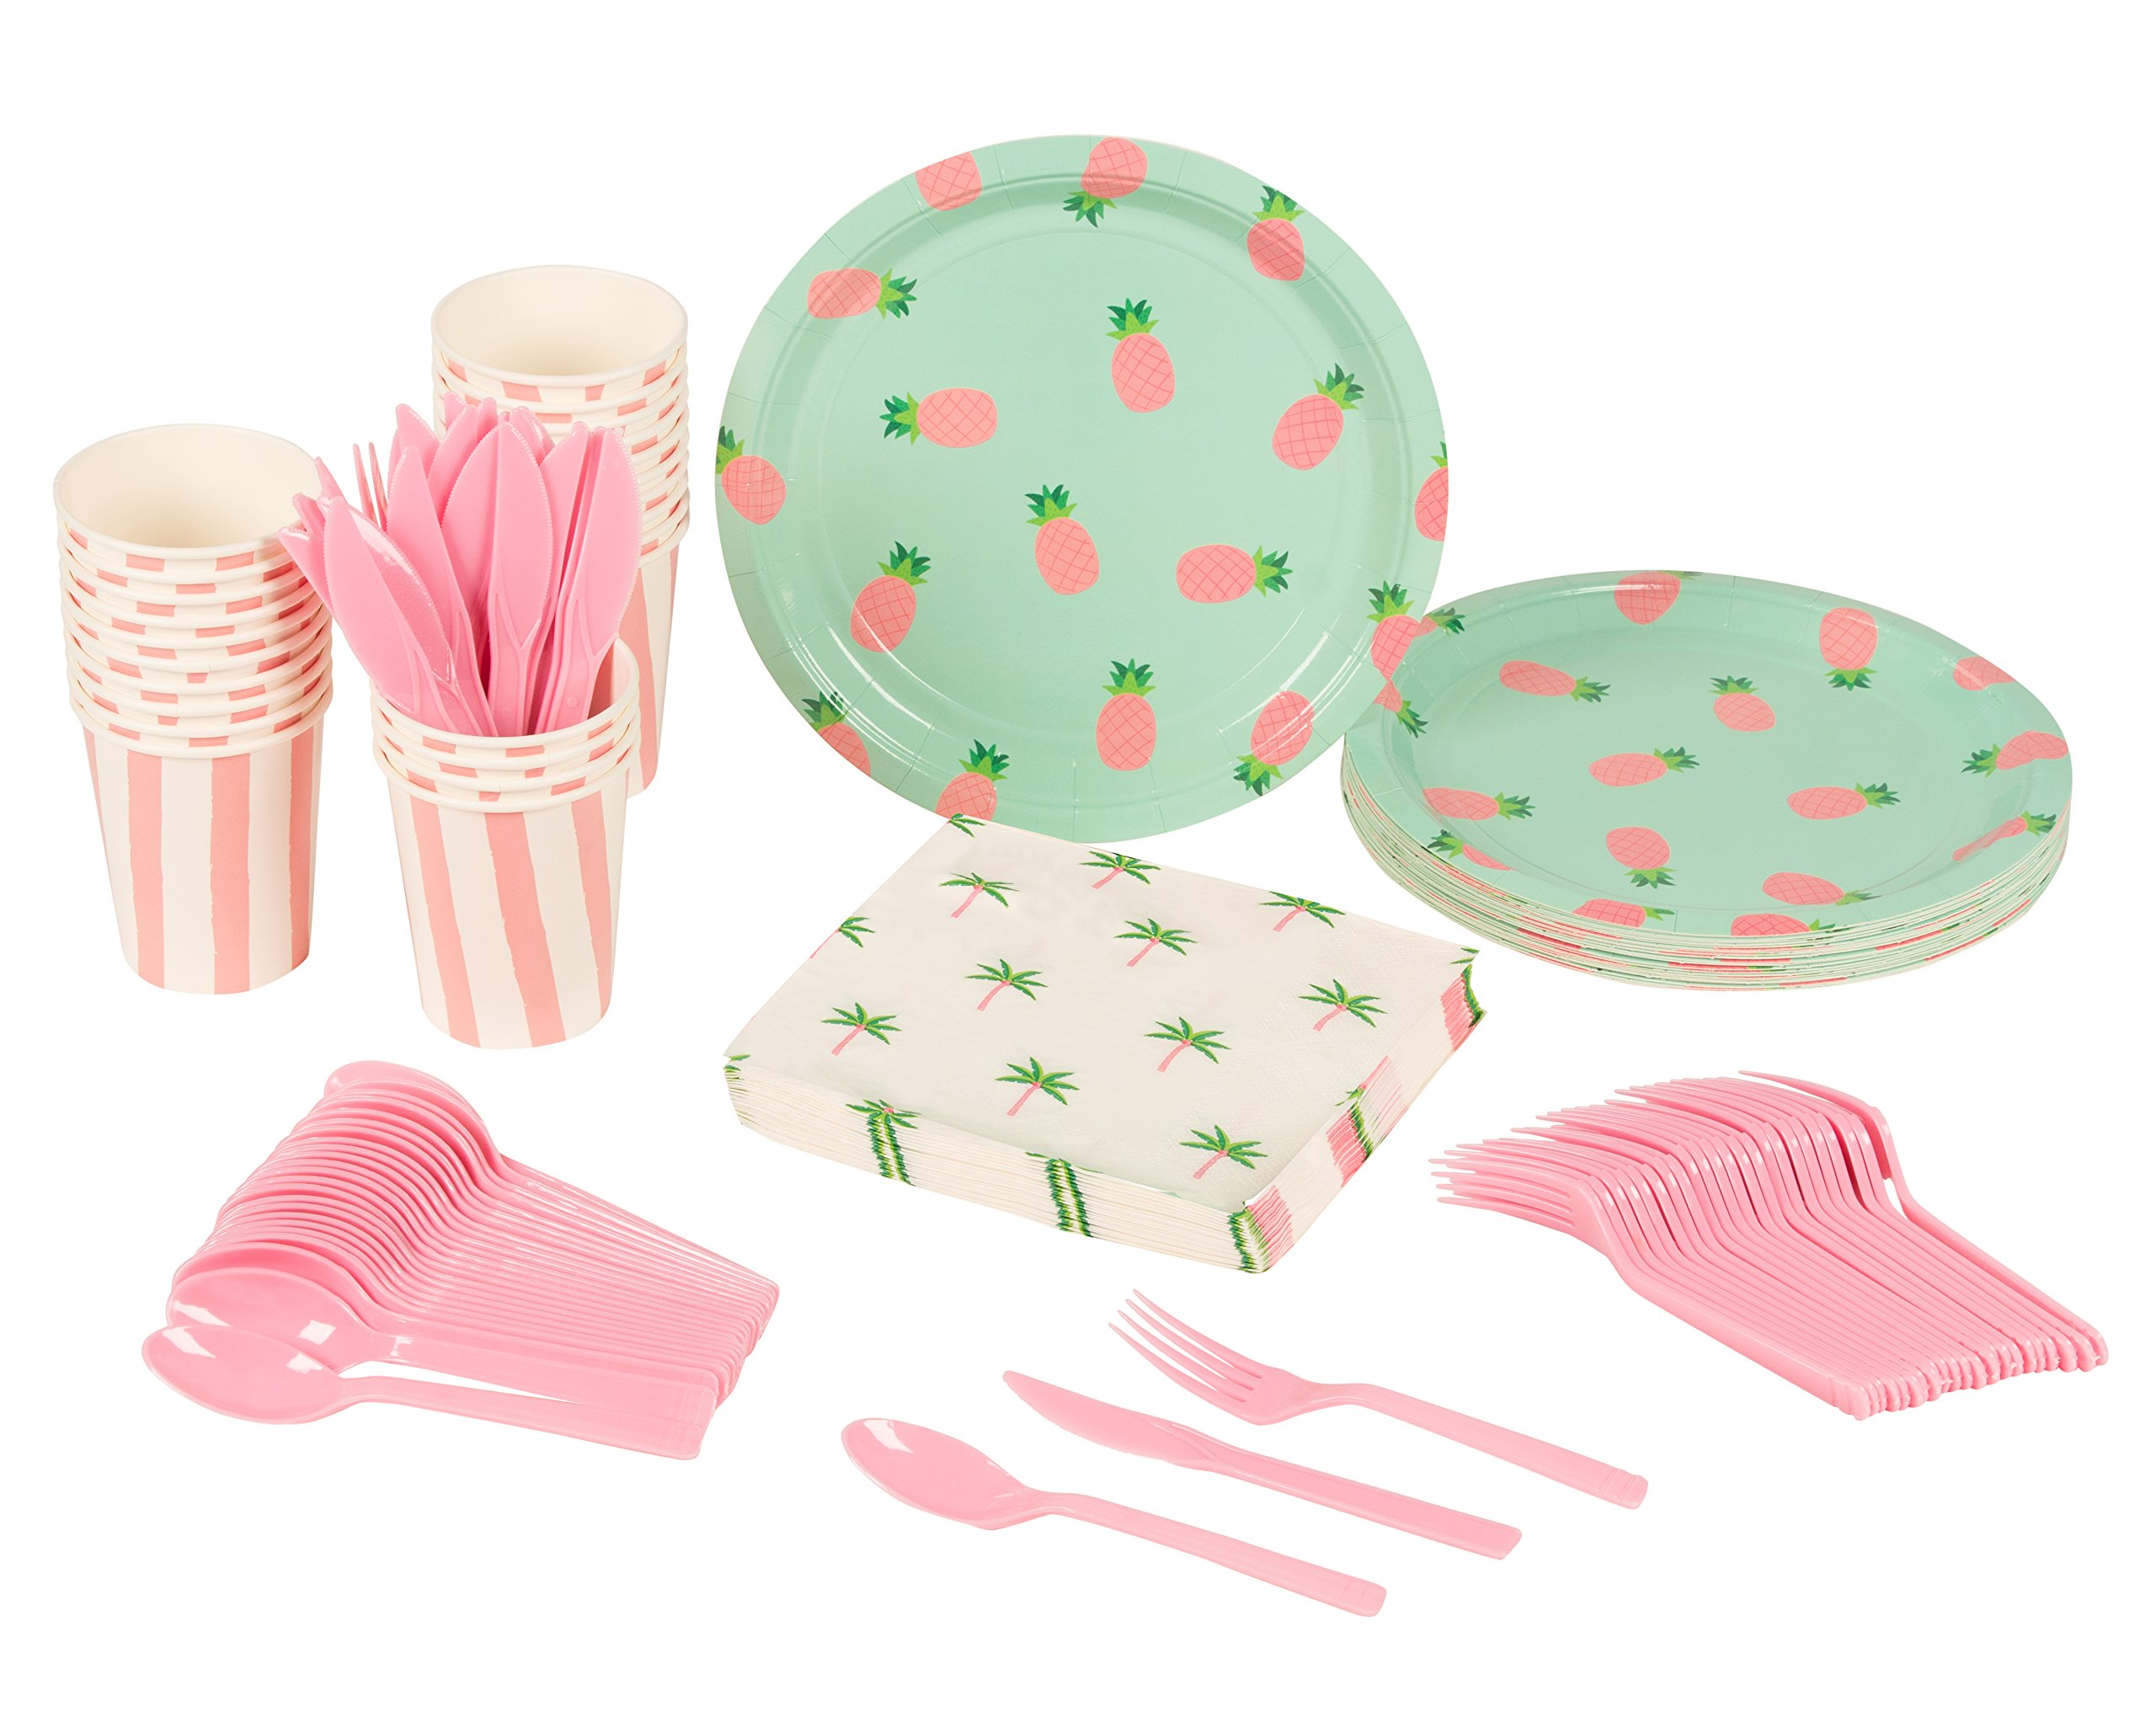 Disposable Dinnerware Set - Serves 24 - Pineapple Party Supplies for Kids Birthdays - Includes Plastic Knives, Spoons, Forks, Paper Plates, Napkins, Cups